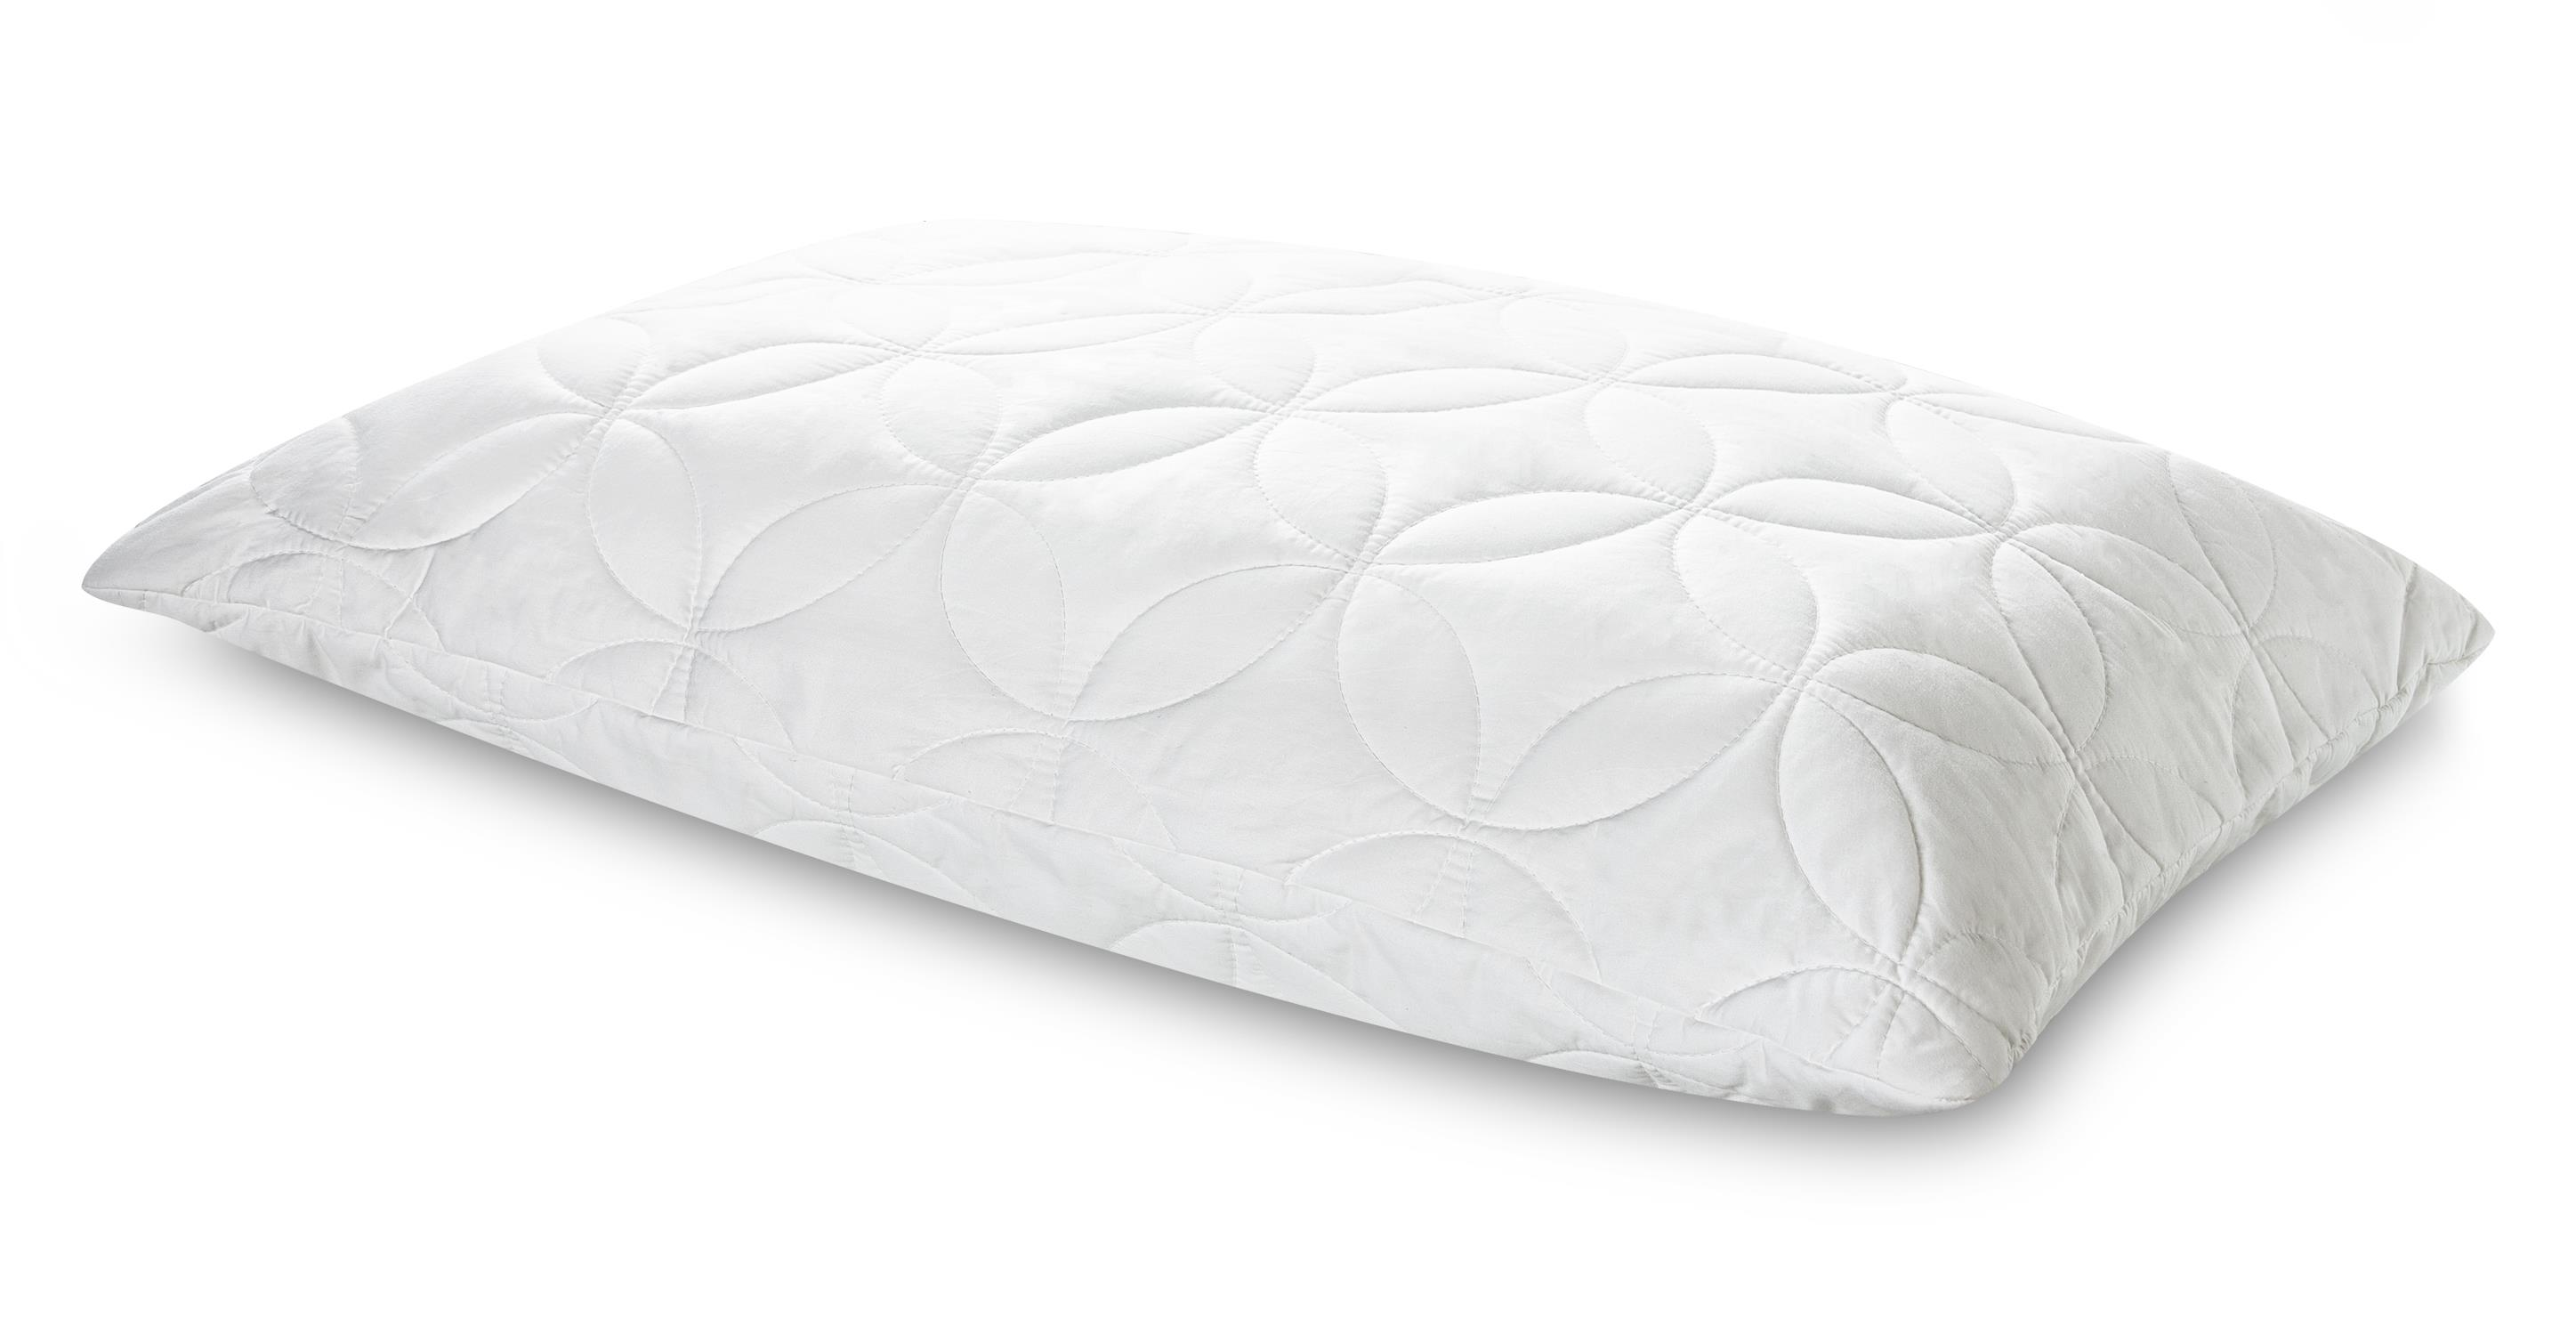 Tempur-Pedic® Tempur Pillows Queen Tempur-Cloud Soft & Conforming Pillow - Item Number: 15440221